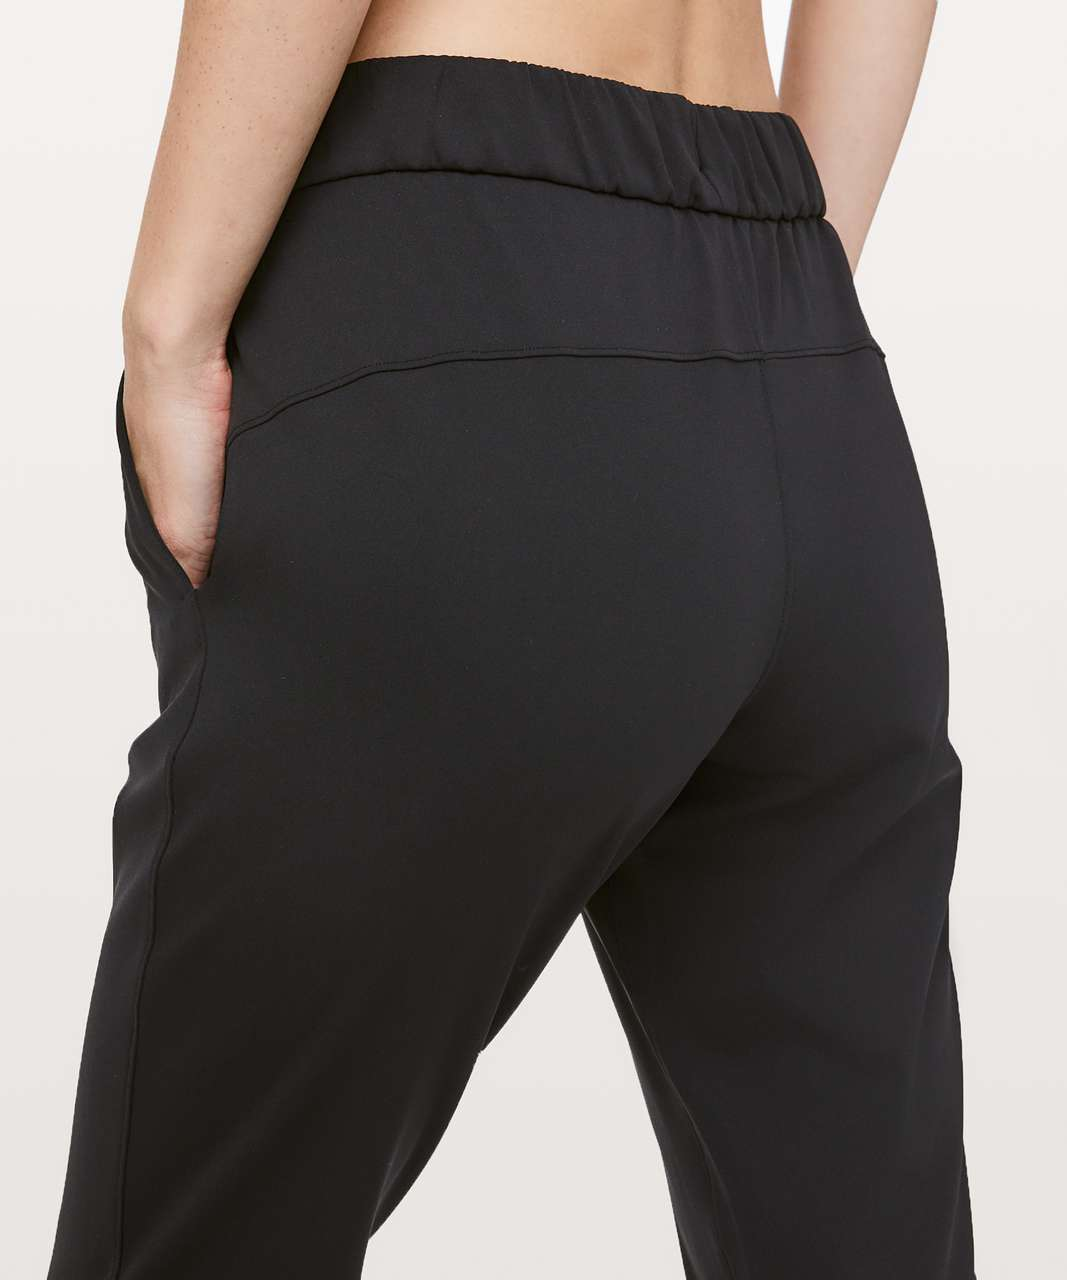 5c2ee7e7d Lululemon On The Fly Pant Full Length 31